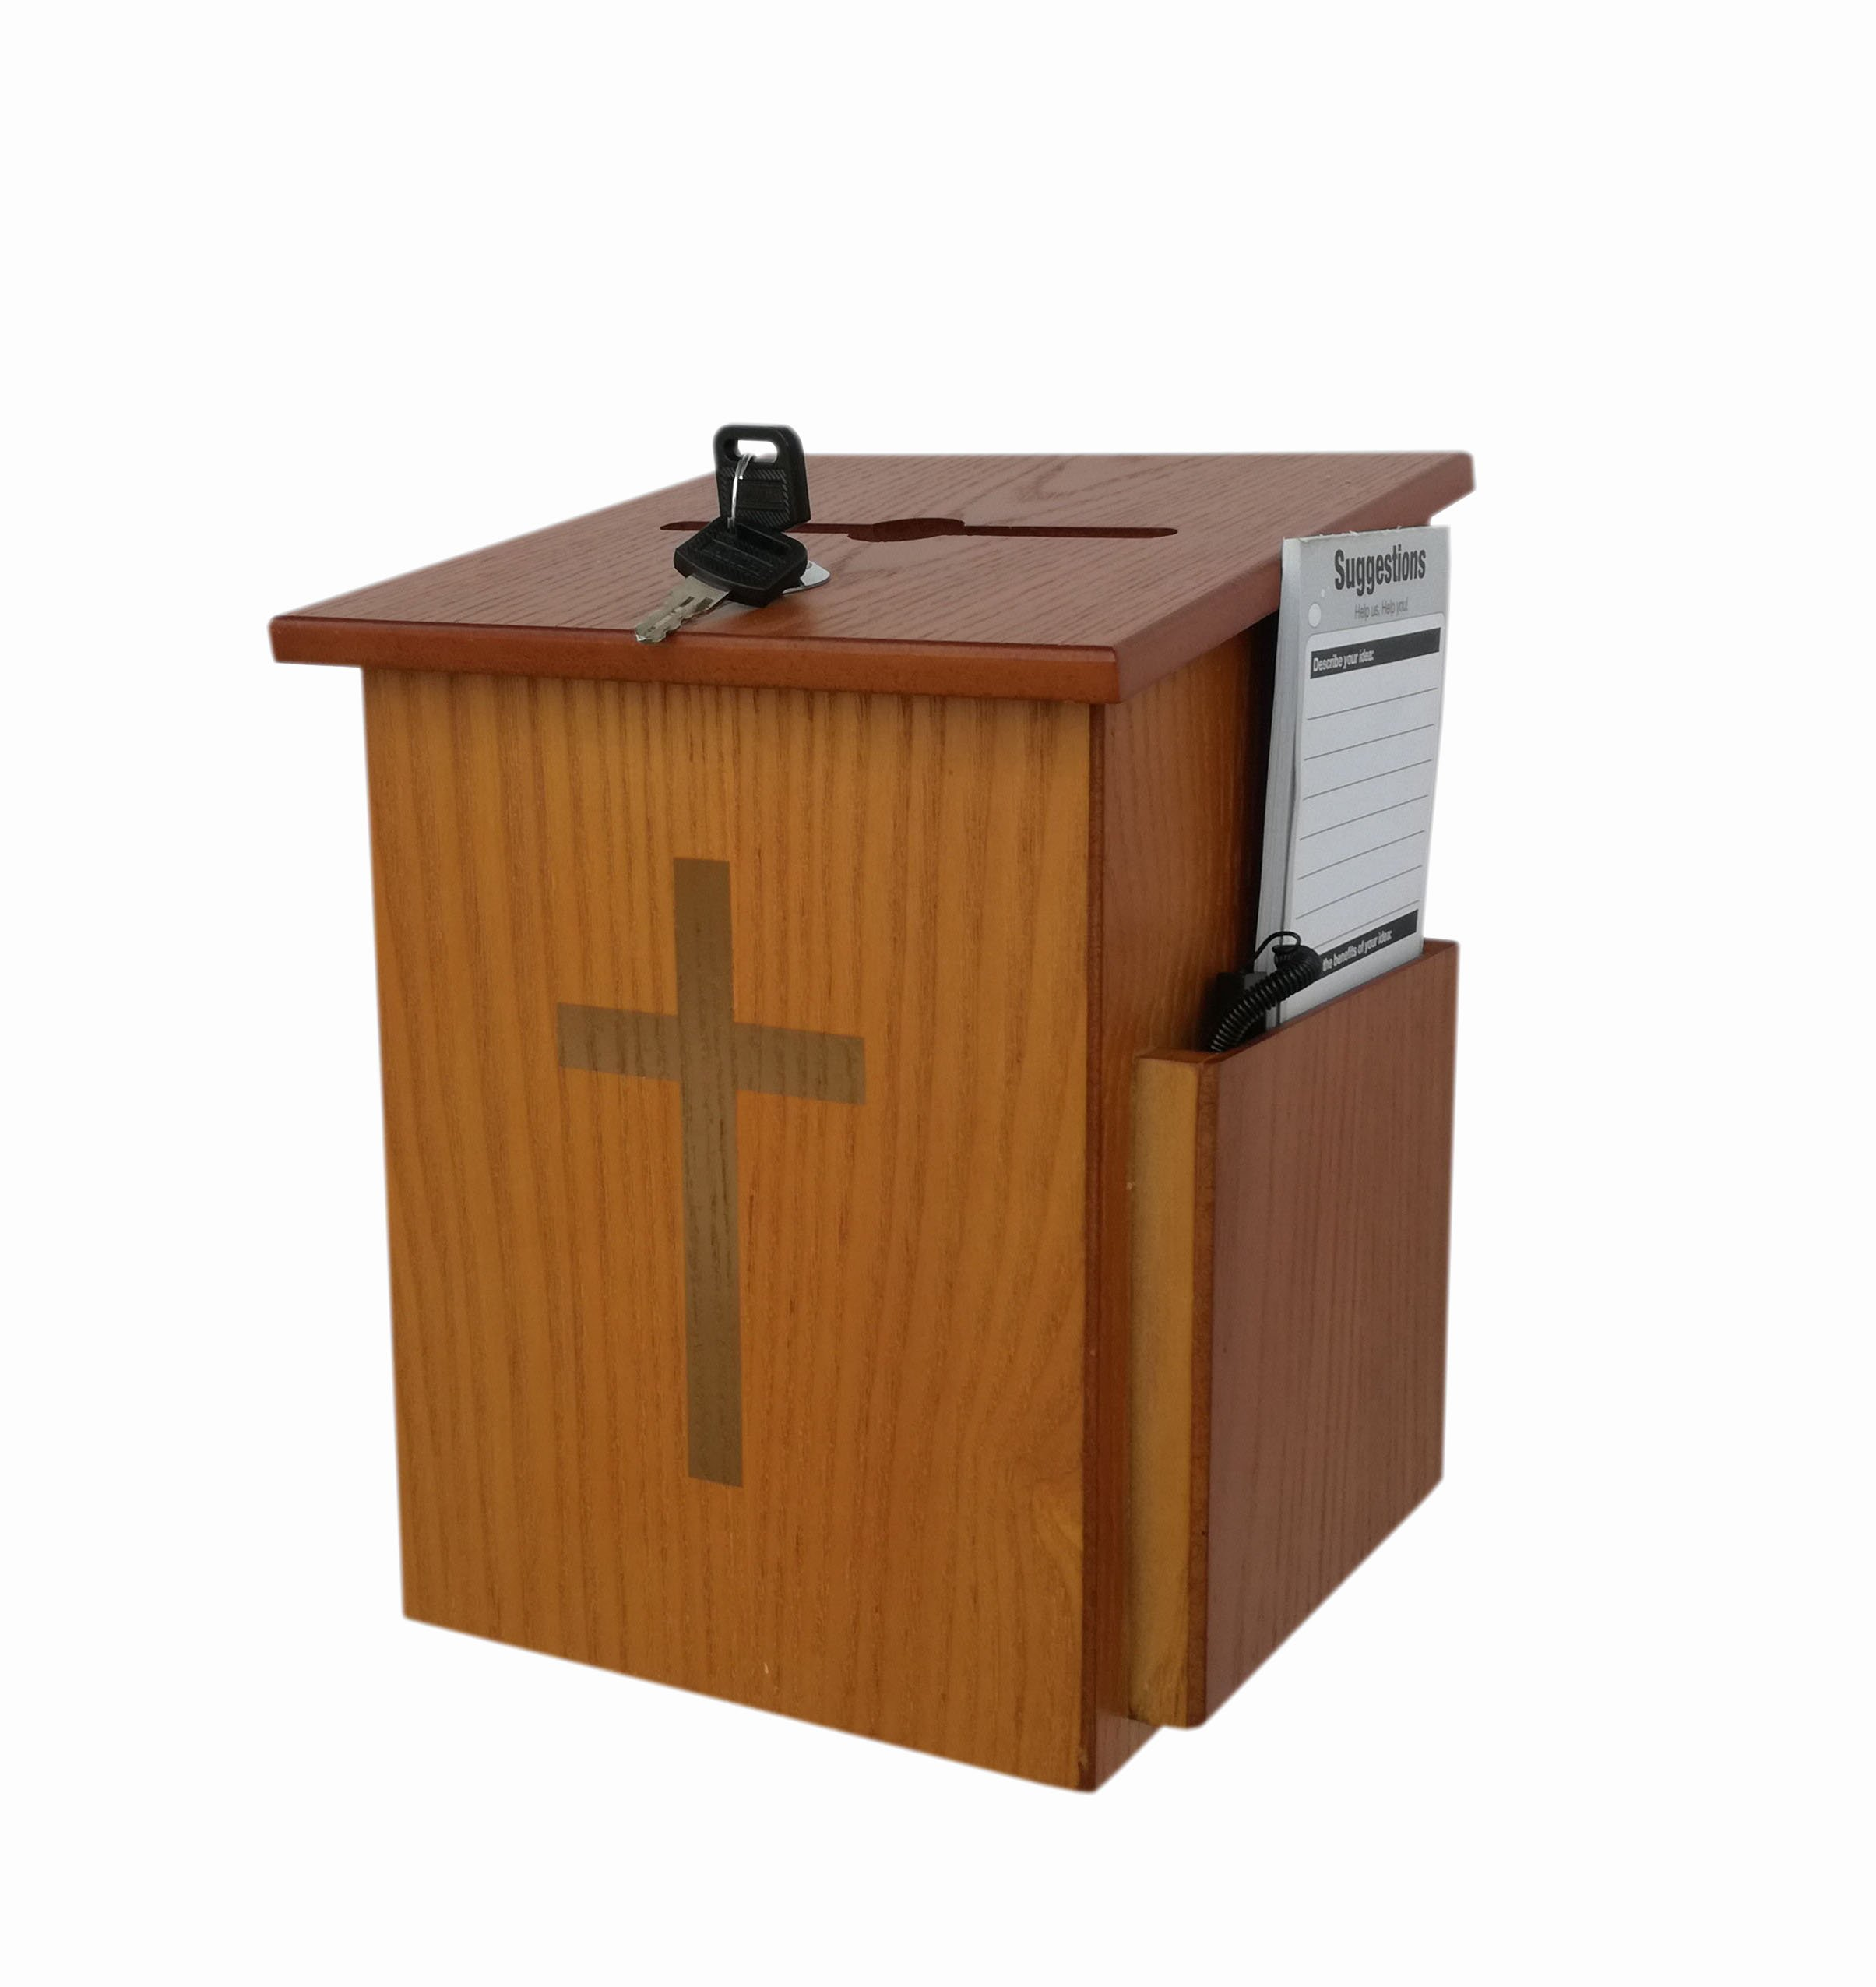 FixtureDisplays Church Collection Fundraising Box Suggestion Box Donnation Charity Box 10885 by FixtureDisplays